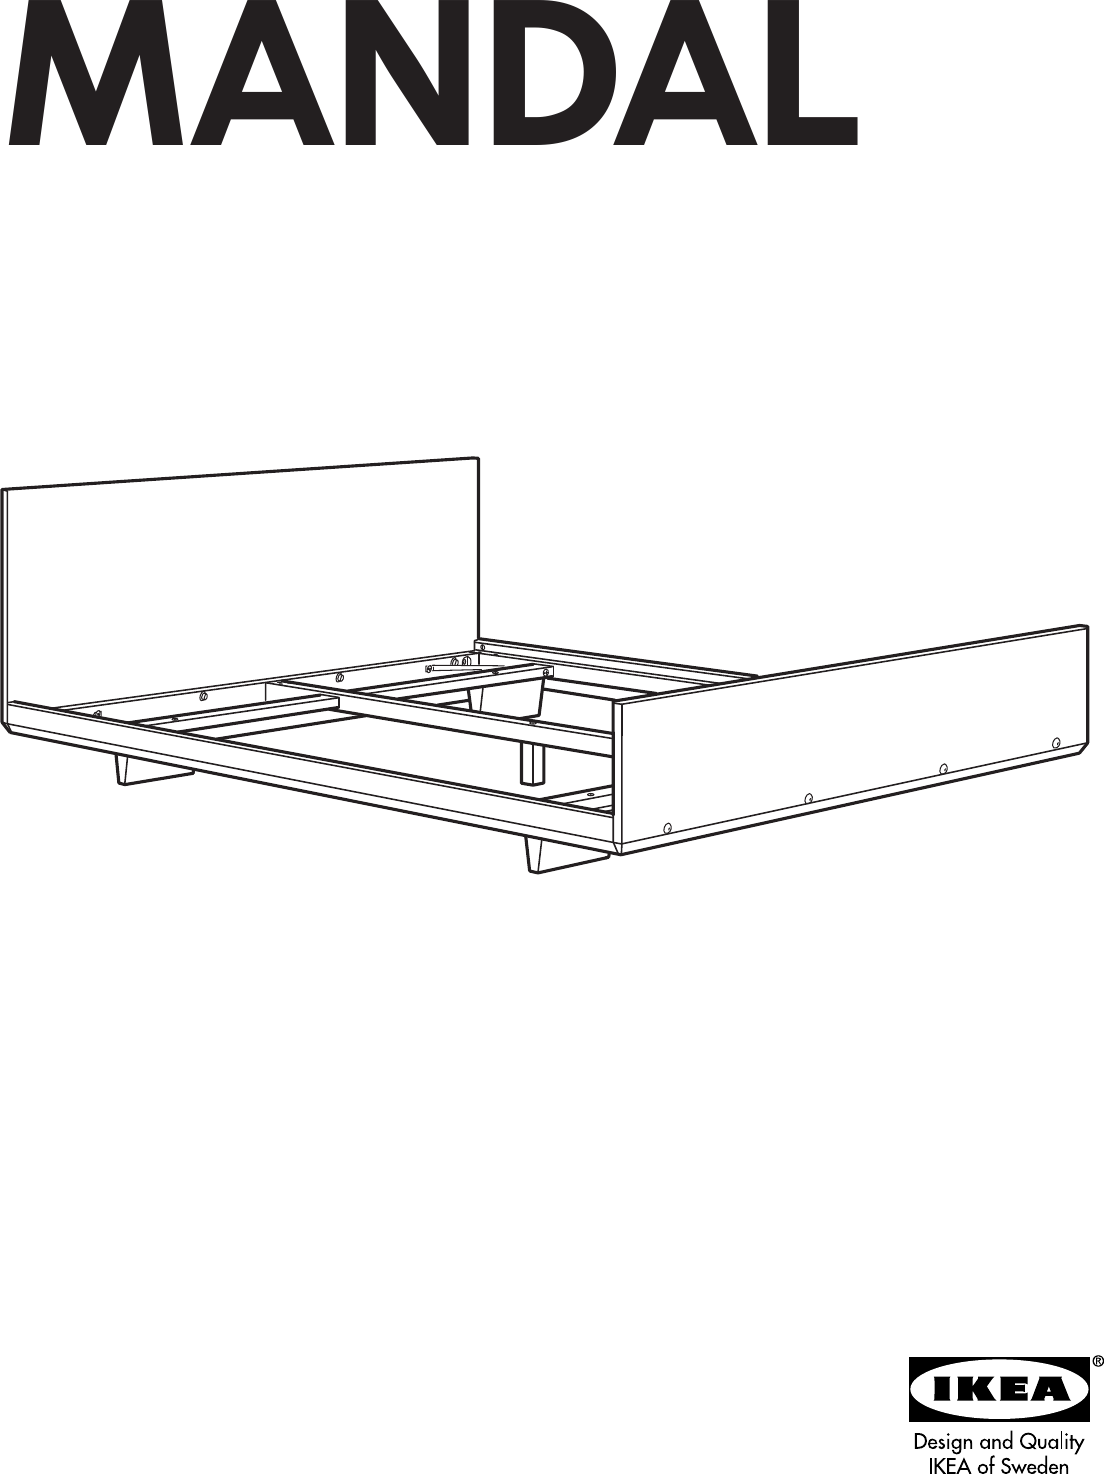 Ikea Mandal Bed Frame Full Double Assembly Instruction